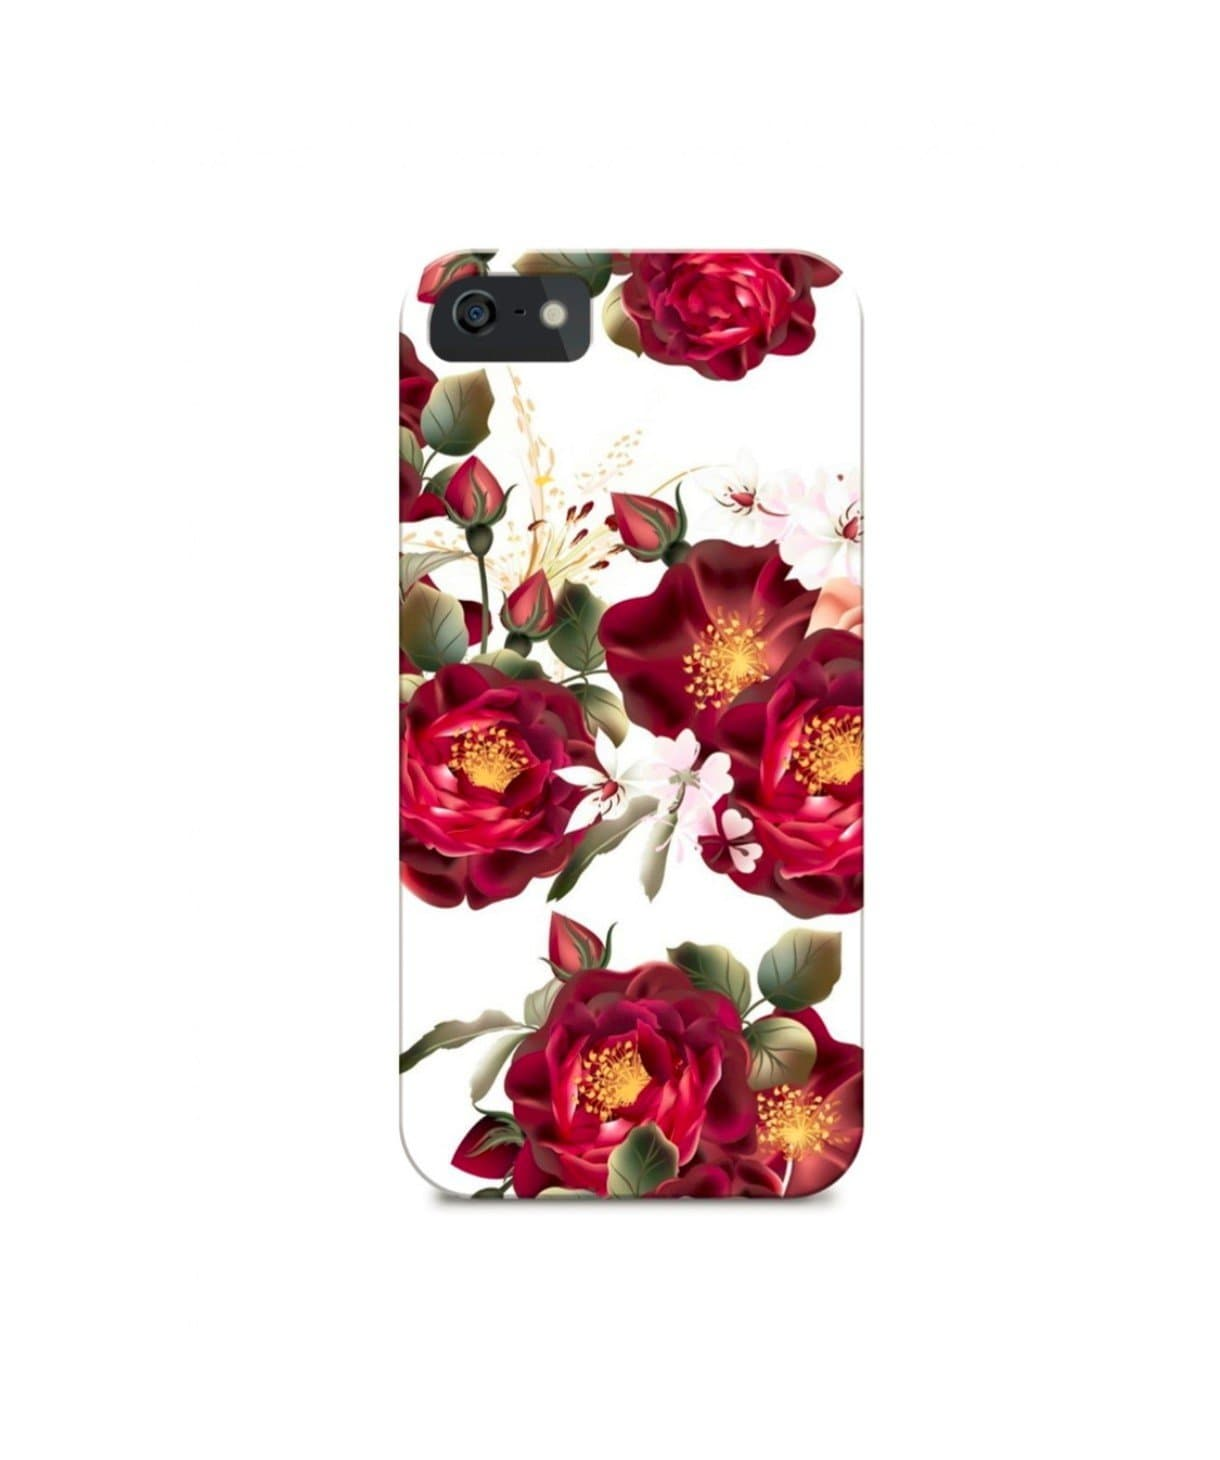 Rosette Phone Cover (Personalisation Available) - Uptownie